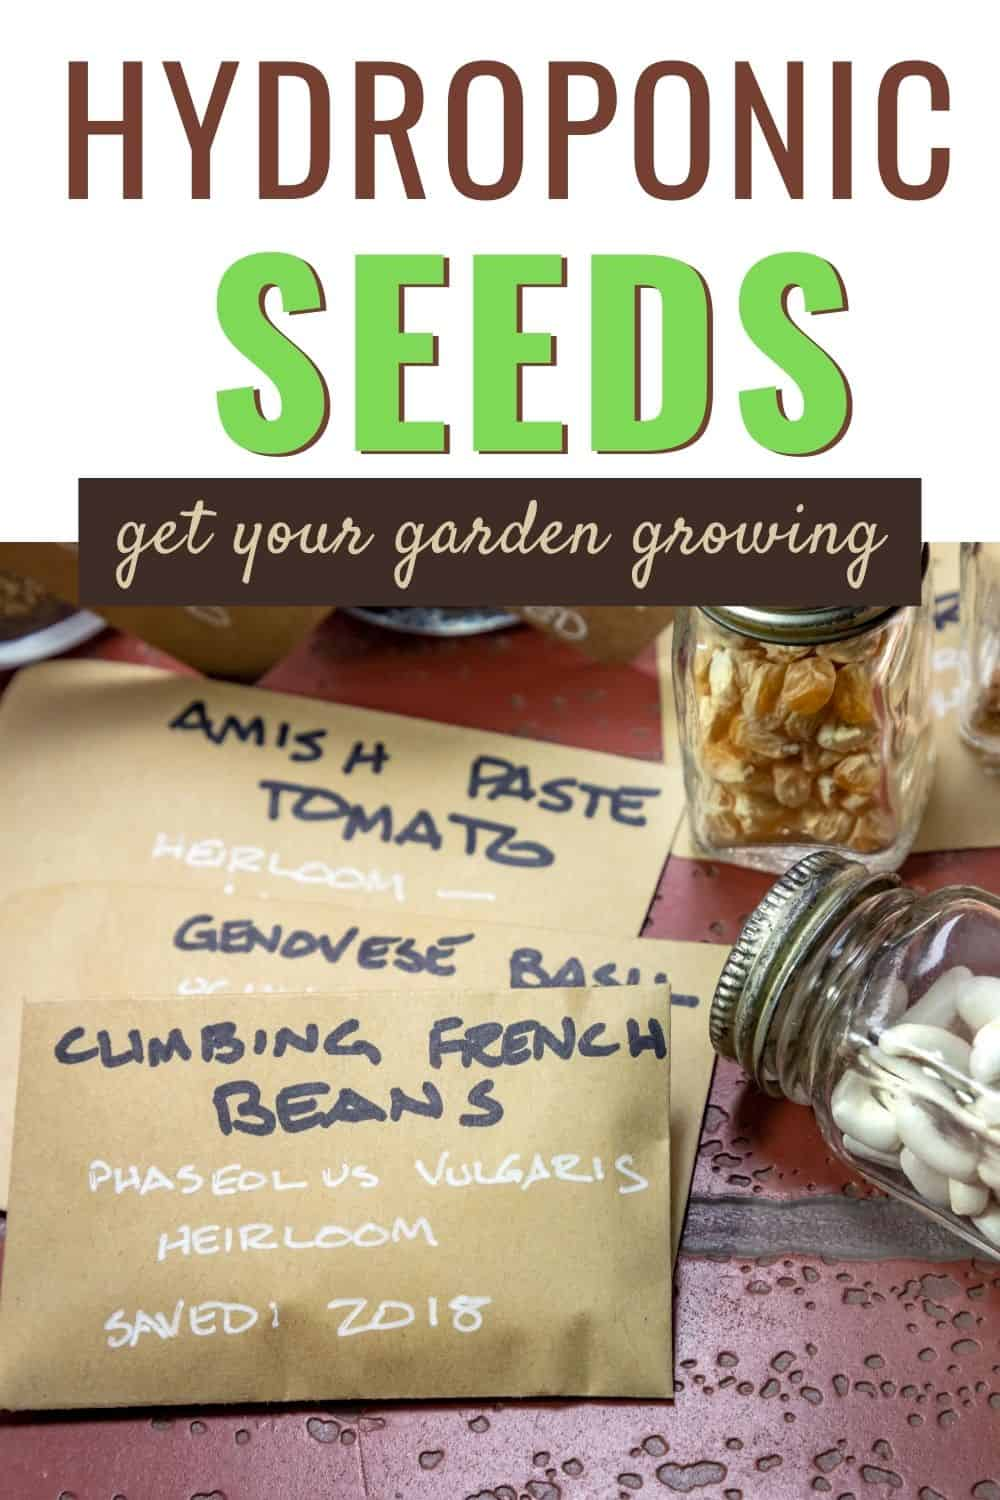 Hydroponic seeds to get your garden going